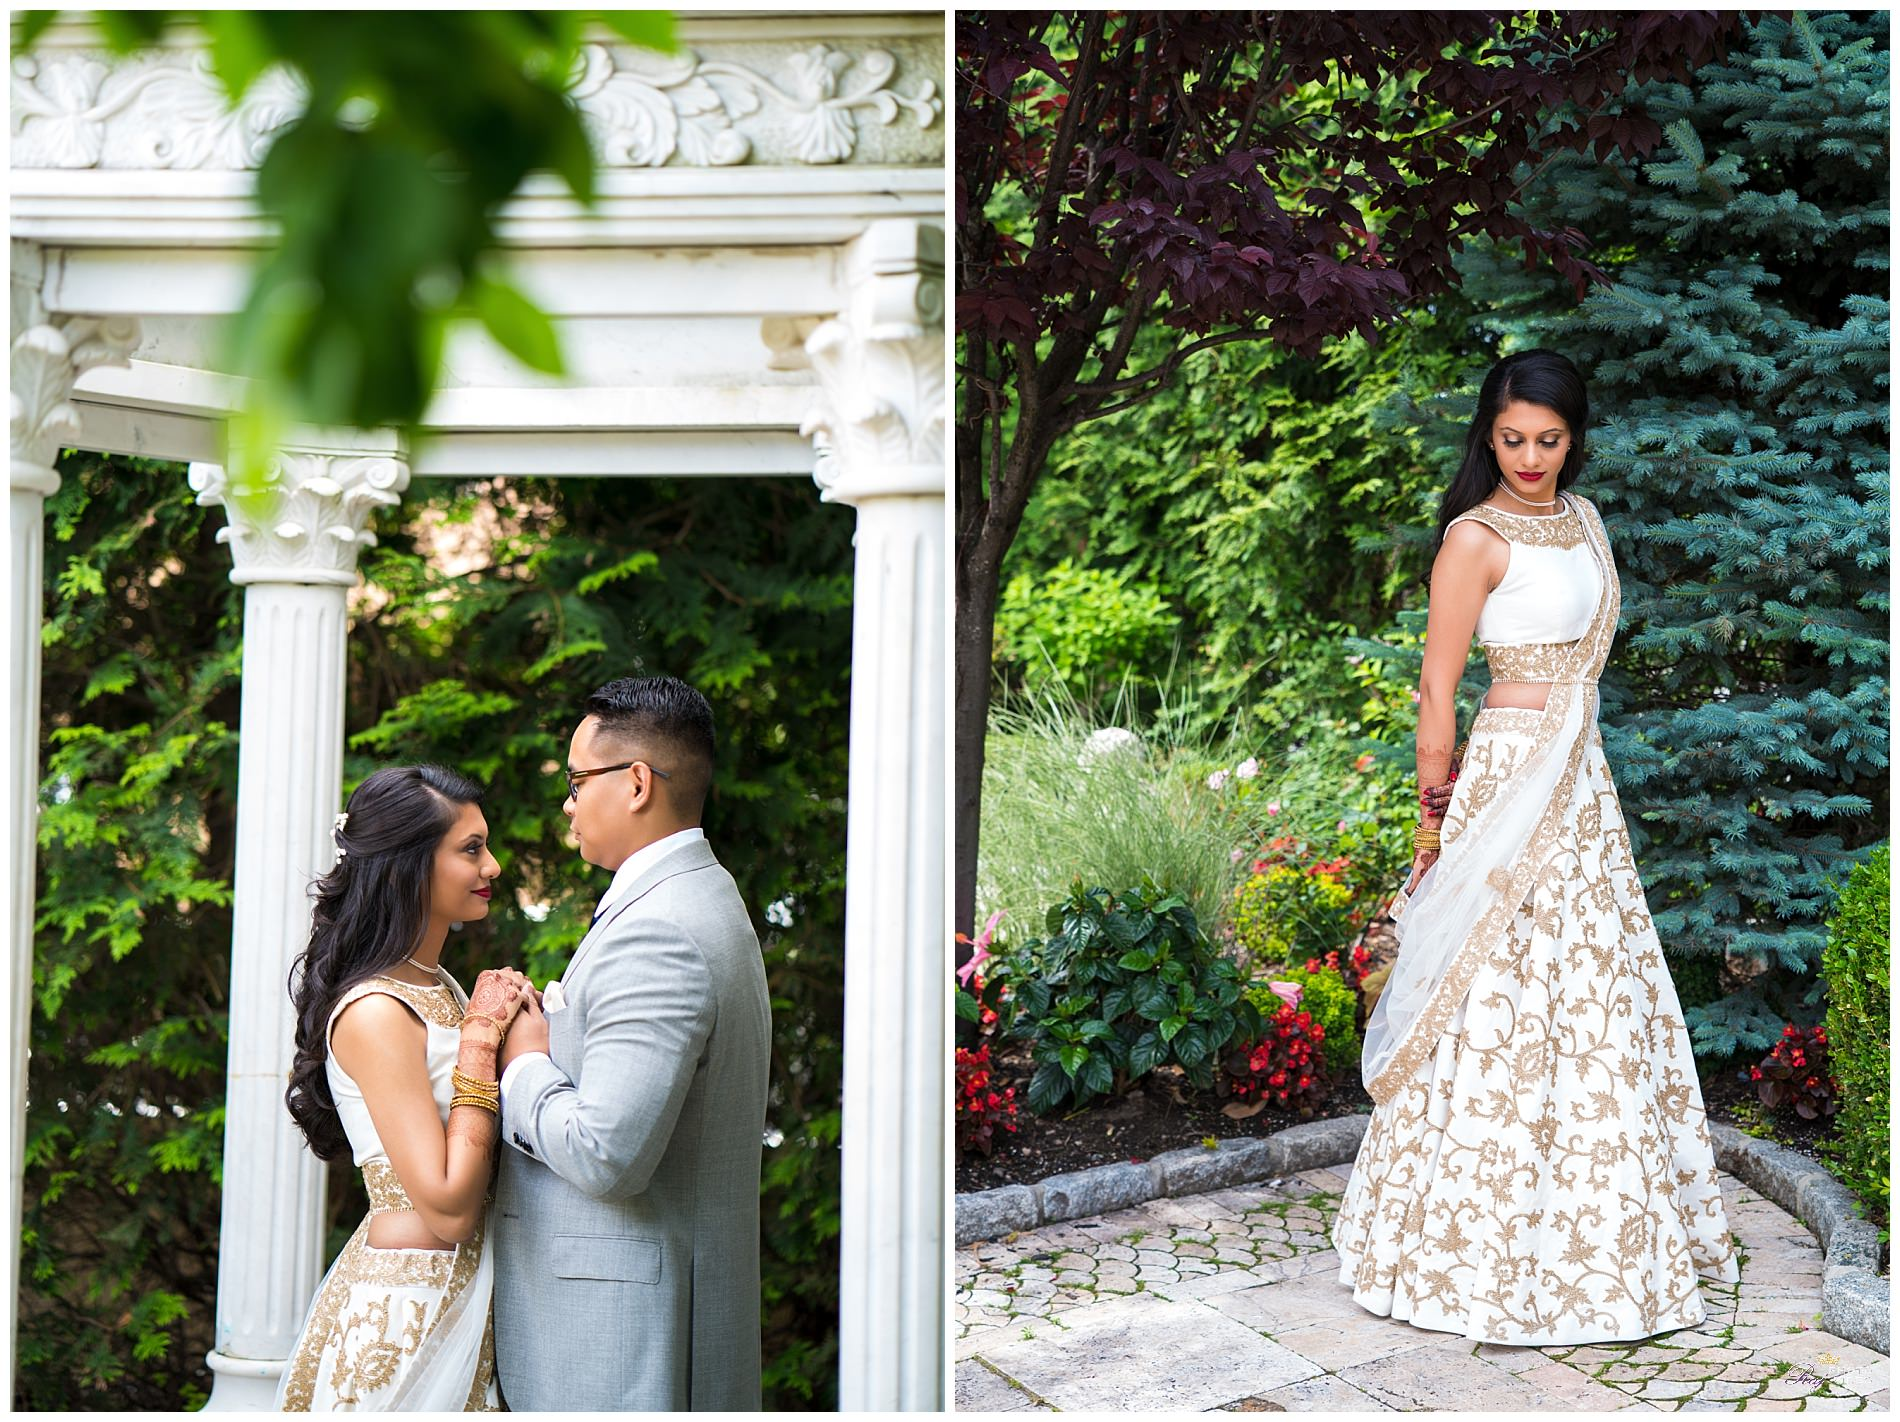 Royal-Manor-Garfield-NJ-Christian-Wedding-Ceremony-Khusbu-Jeff-20.jpg